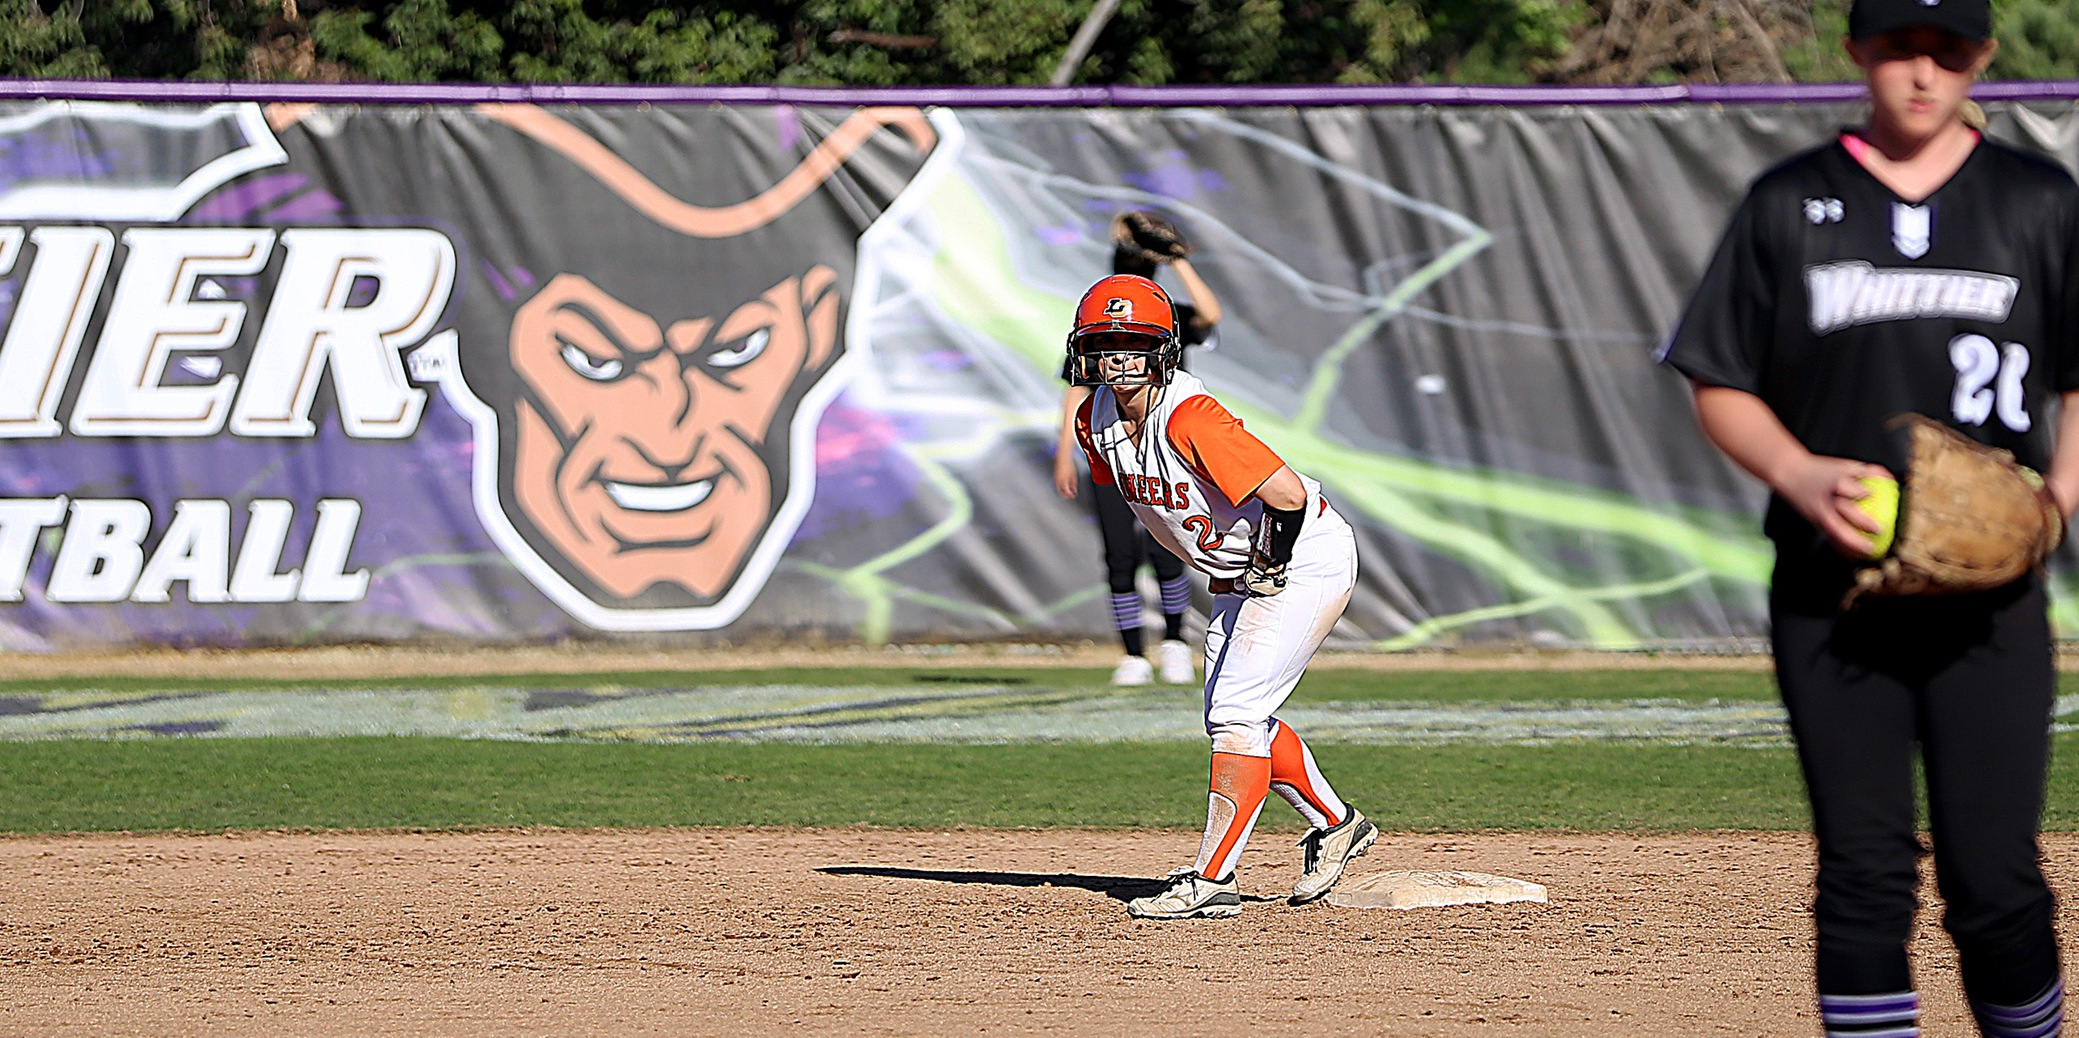 Pair of homers lifts Pios to win